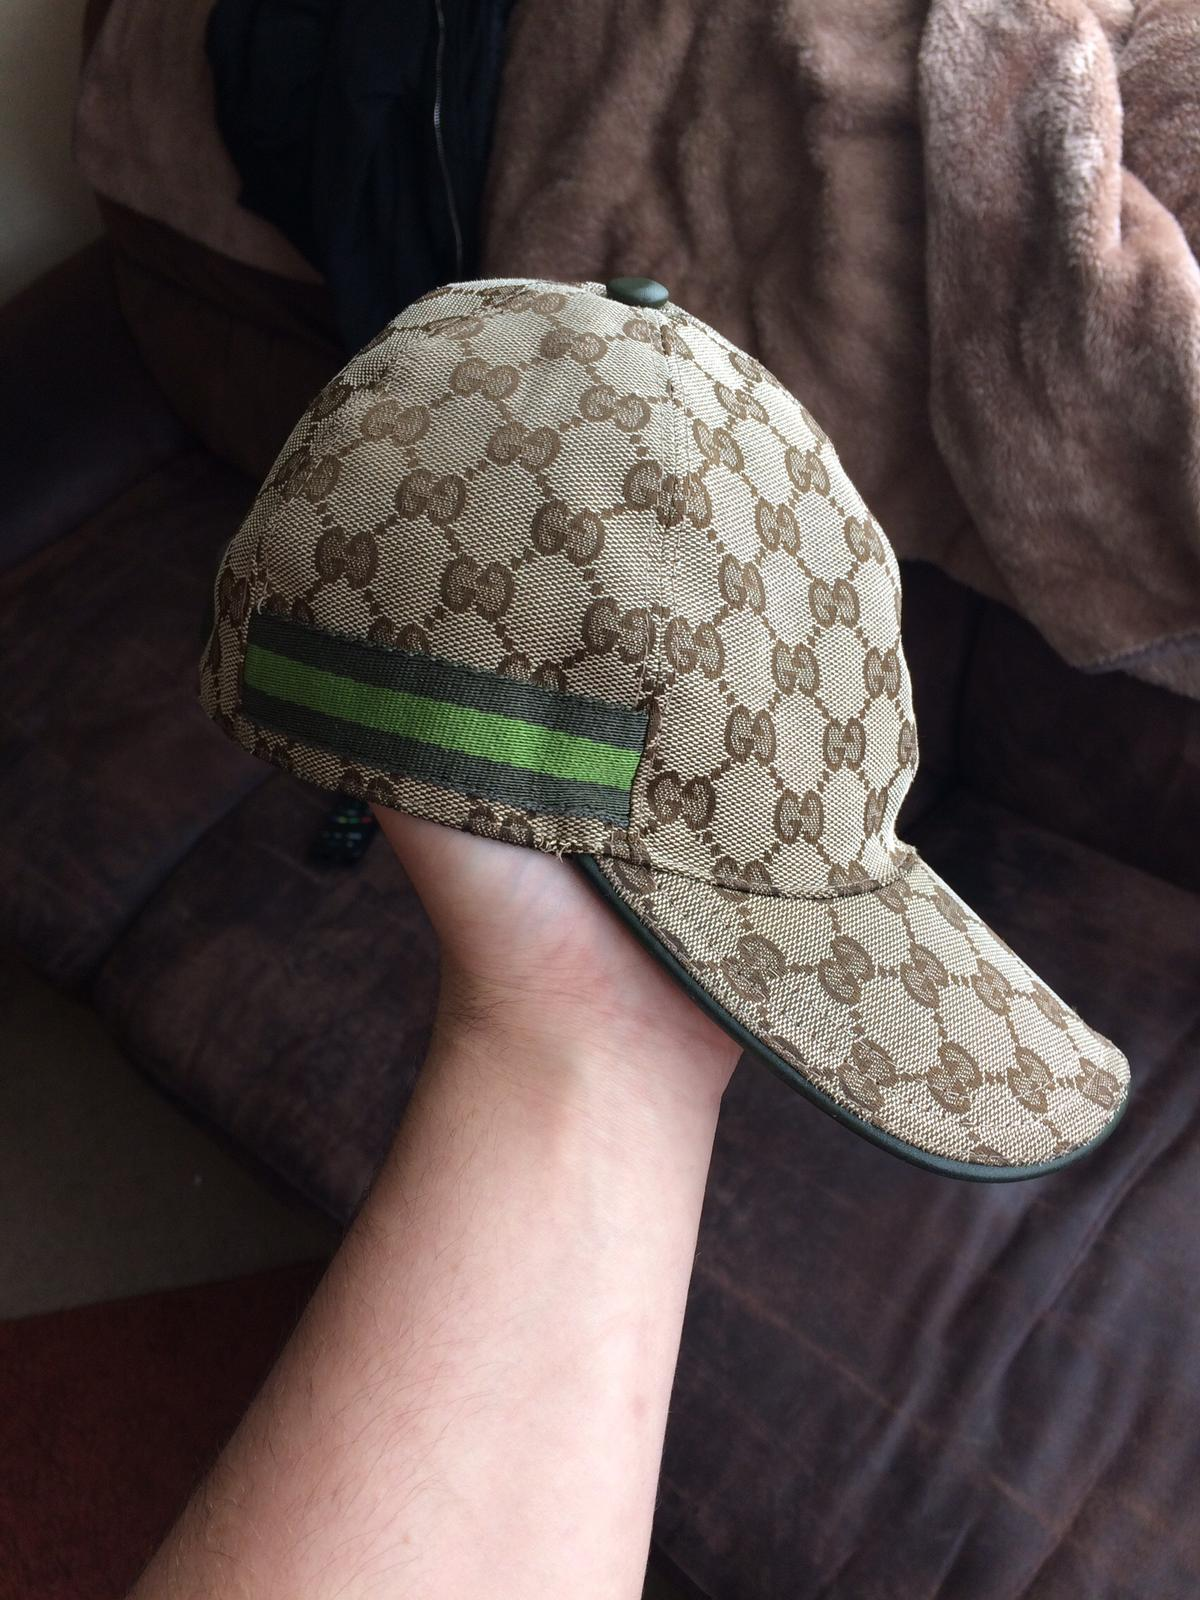 5b103b4e4cdfb Limited edition gucci cap in B34 Birmingham for £70.00 for sale - Shpock